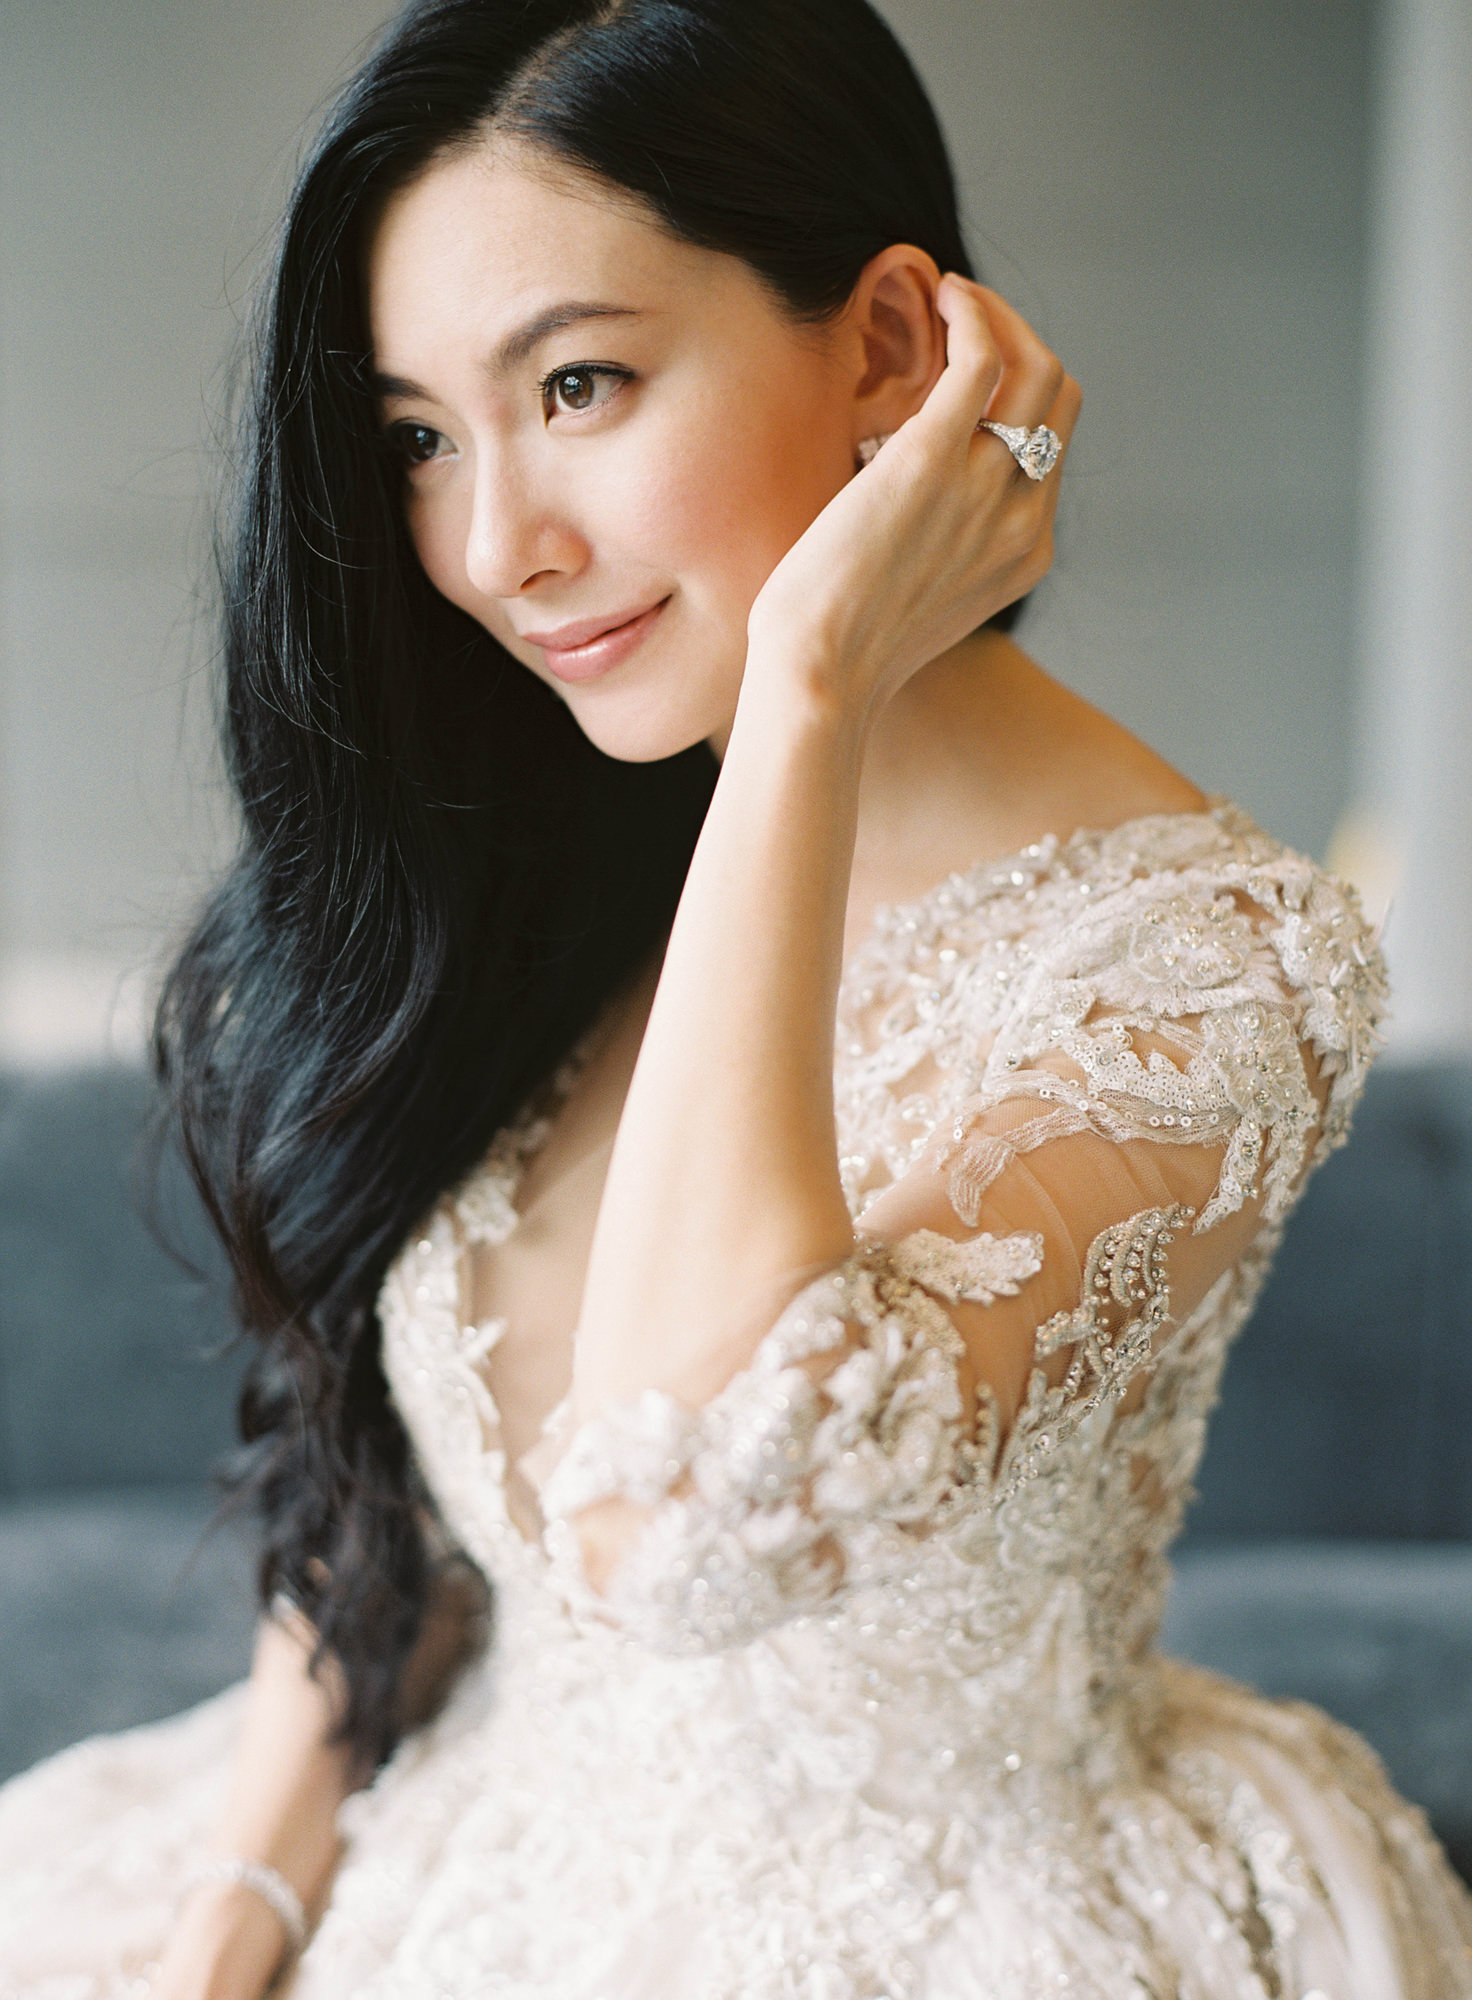 worlds-best-wedding-photos-gorgeous-asian-bride-with-crystal-applique-wedding-dress-jen-huang-los-angeles-wedding-photographer